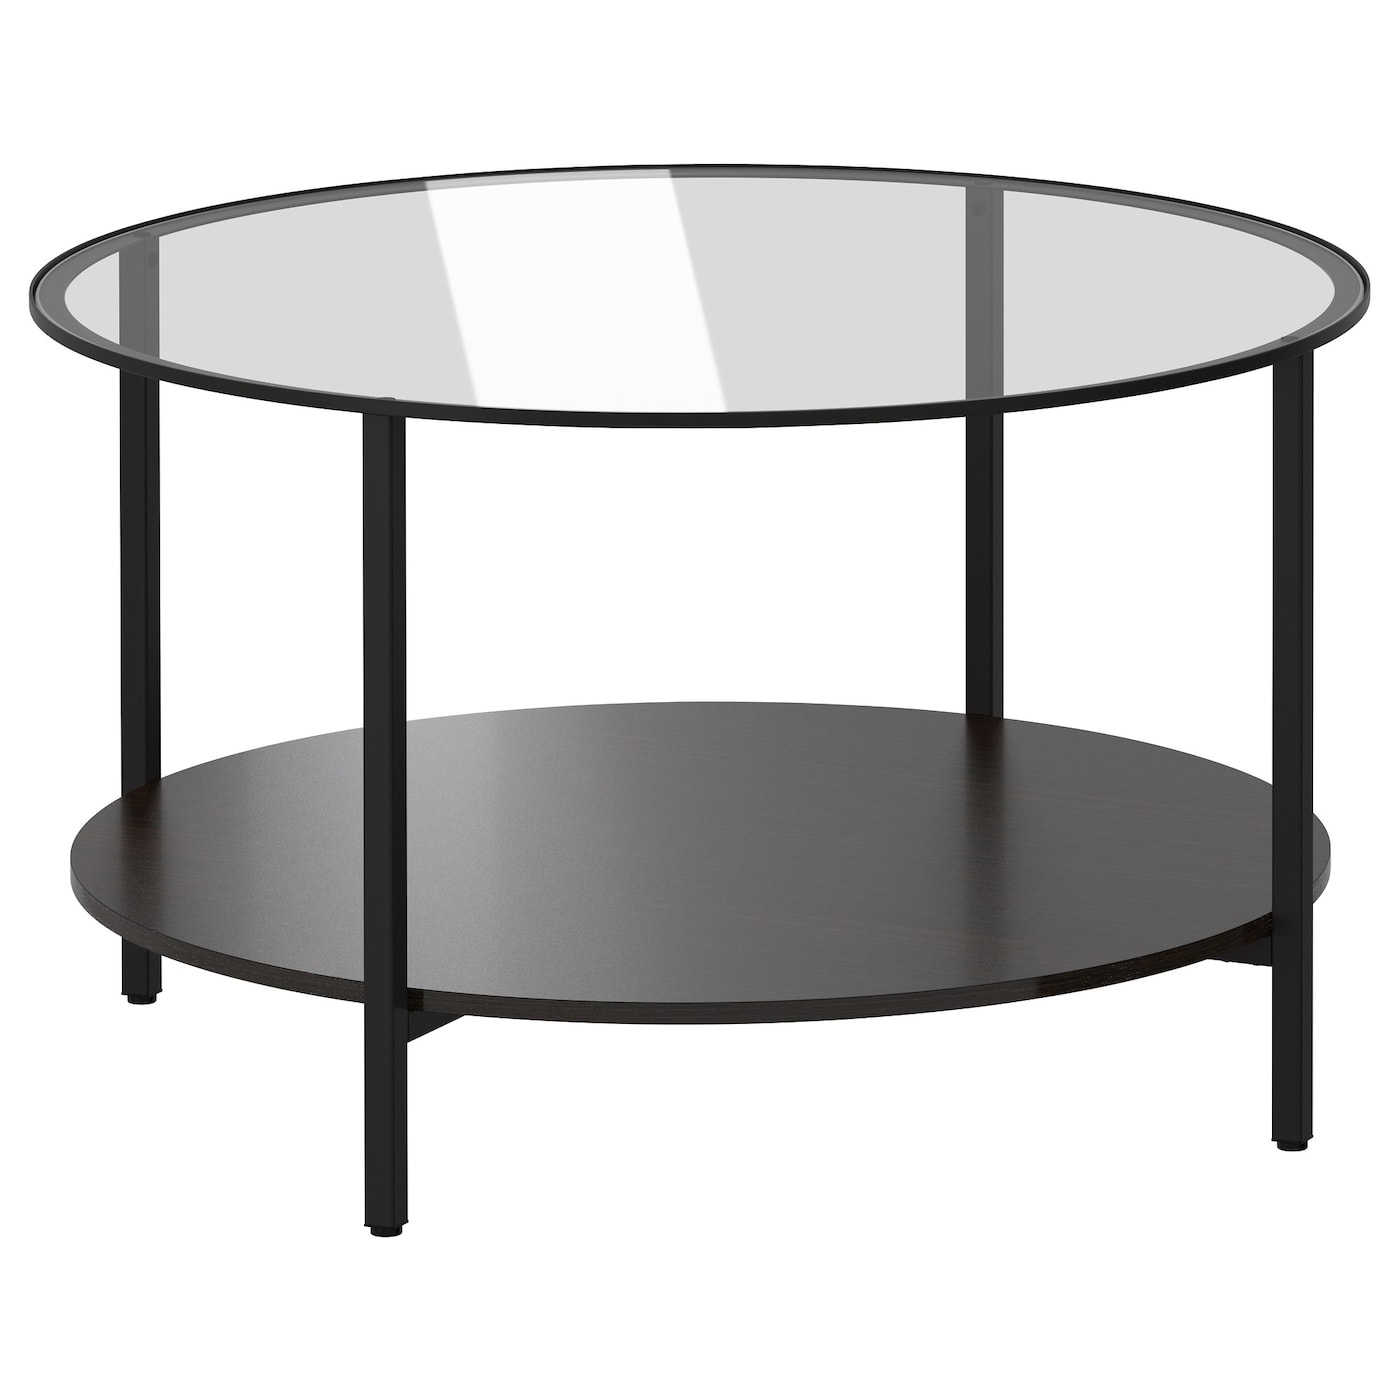 Vittsj coffee table black brown glass 75 cm ikea for Black glass coffee table